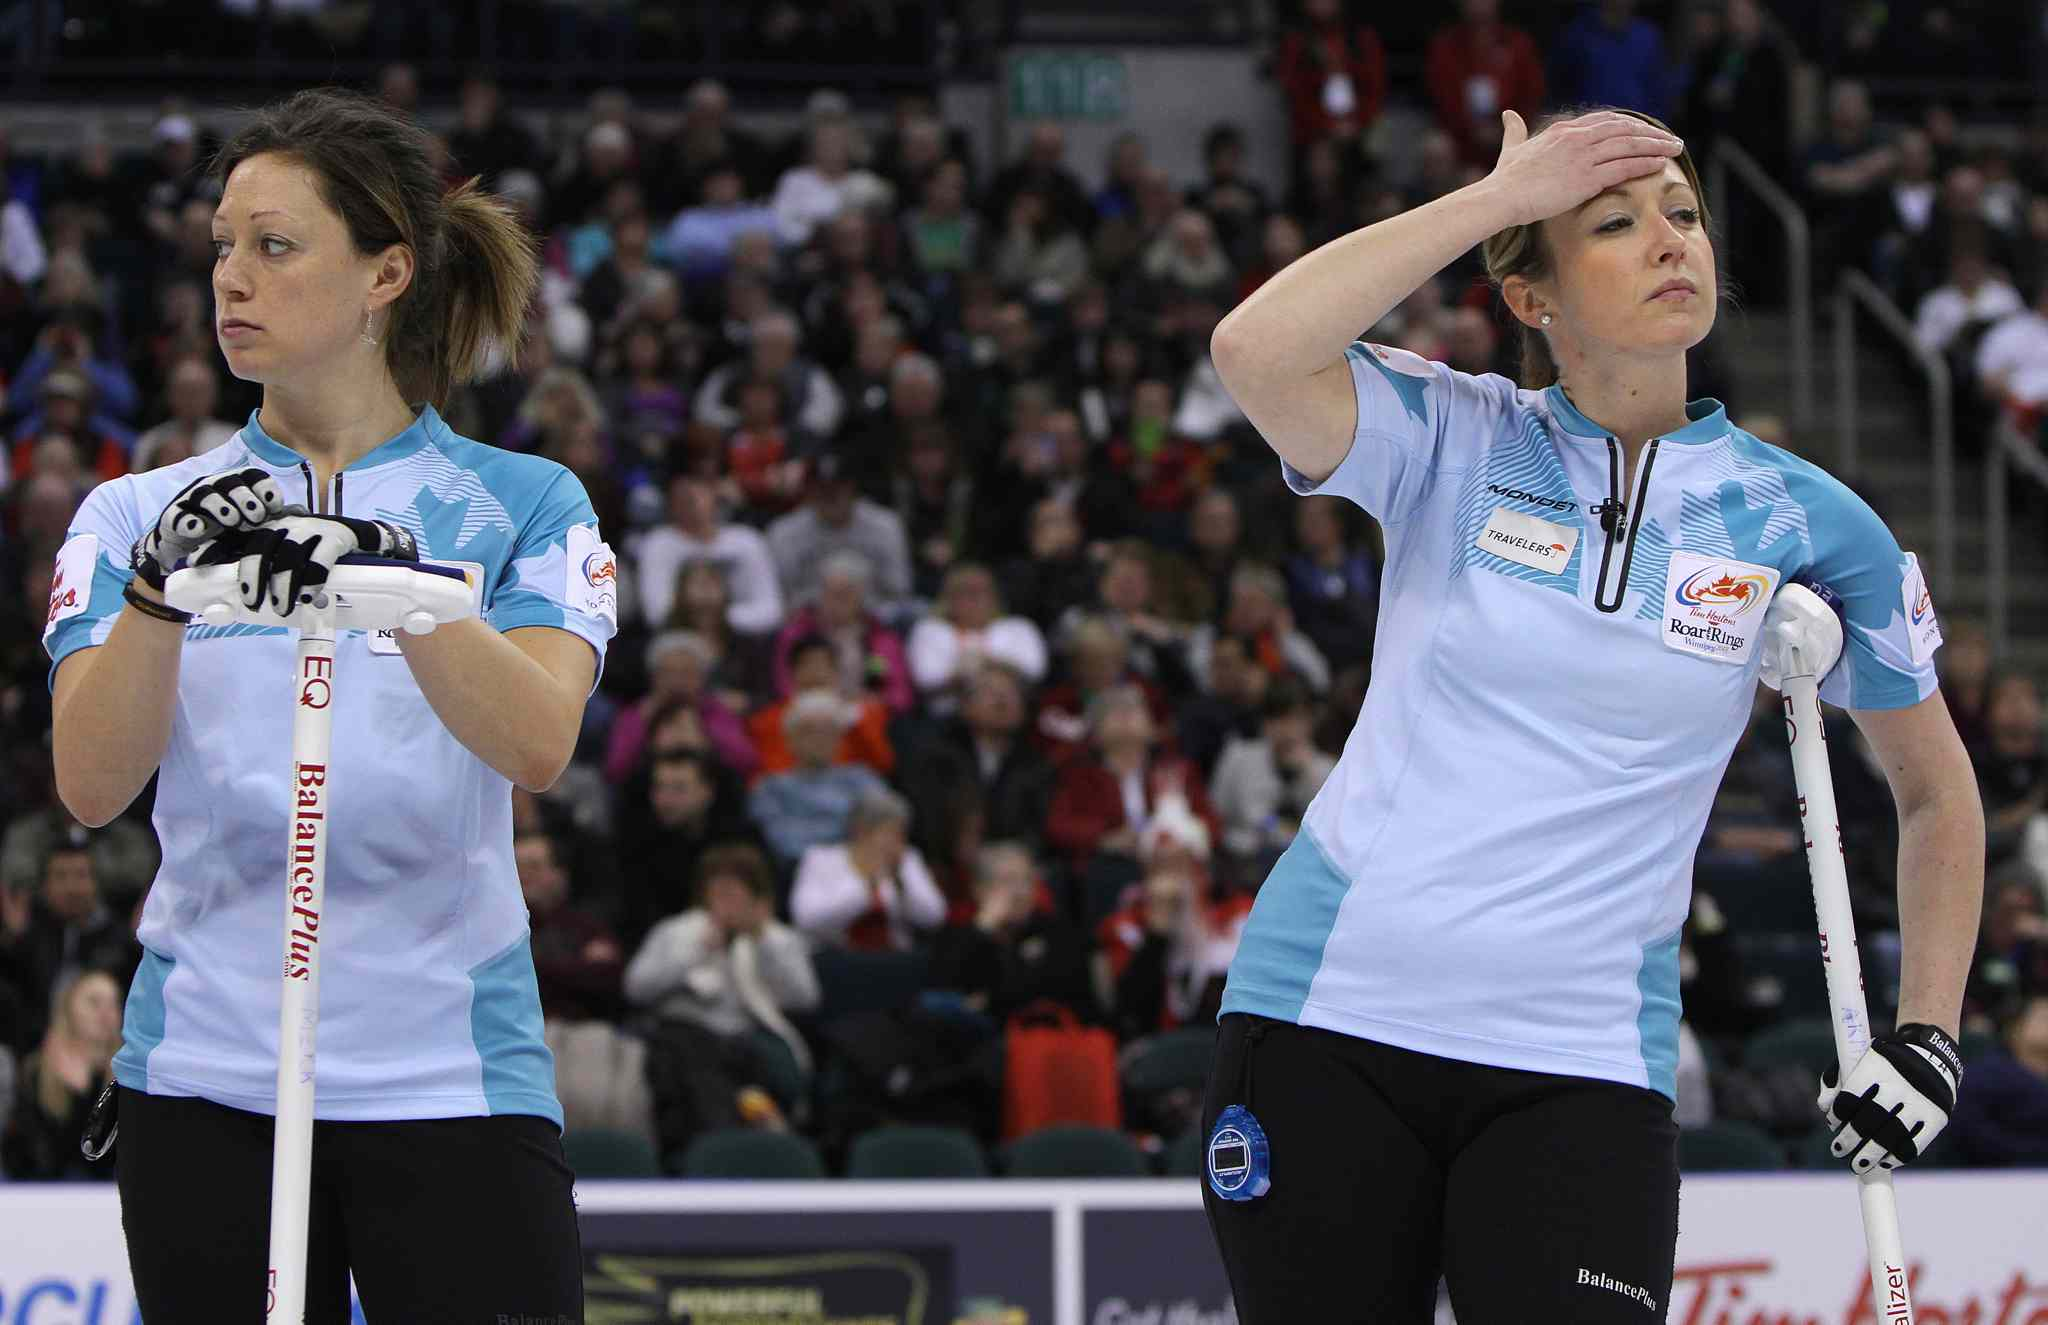 Sherry Middaugh's second Lee Merklinger (left) and lead Leigh Armstrong react to a shot.